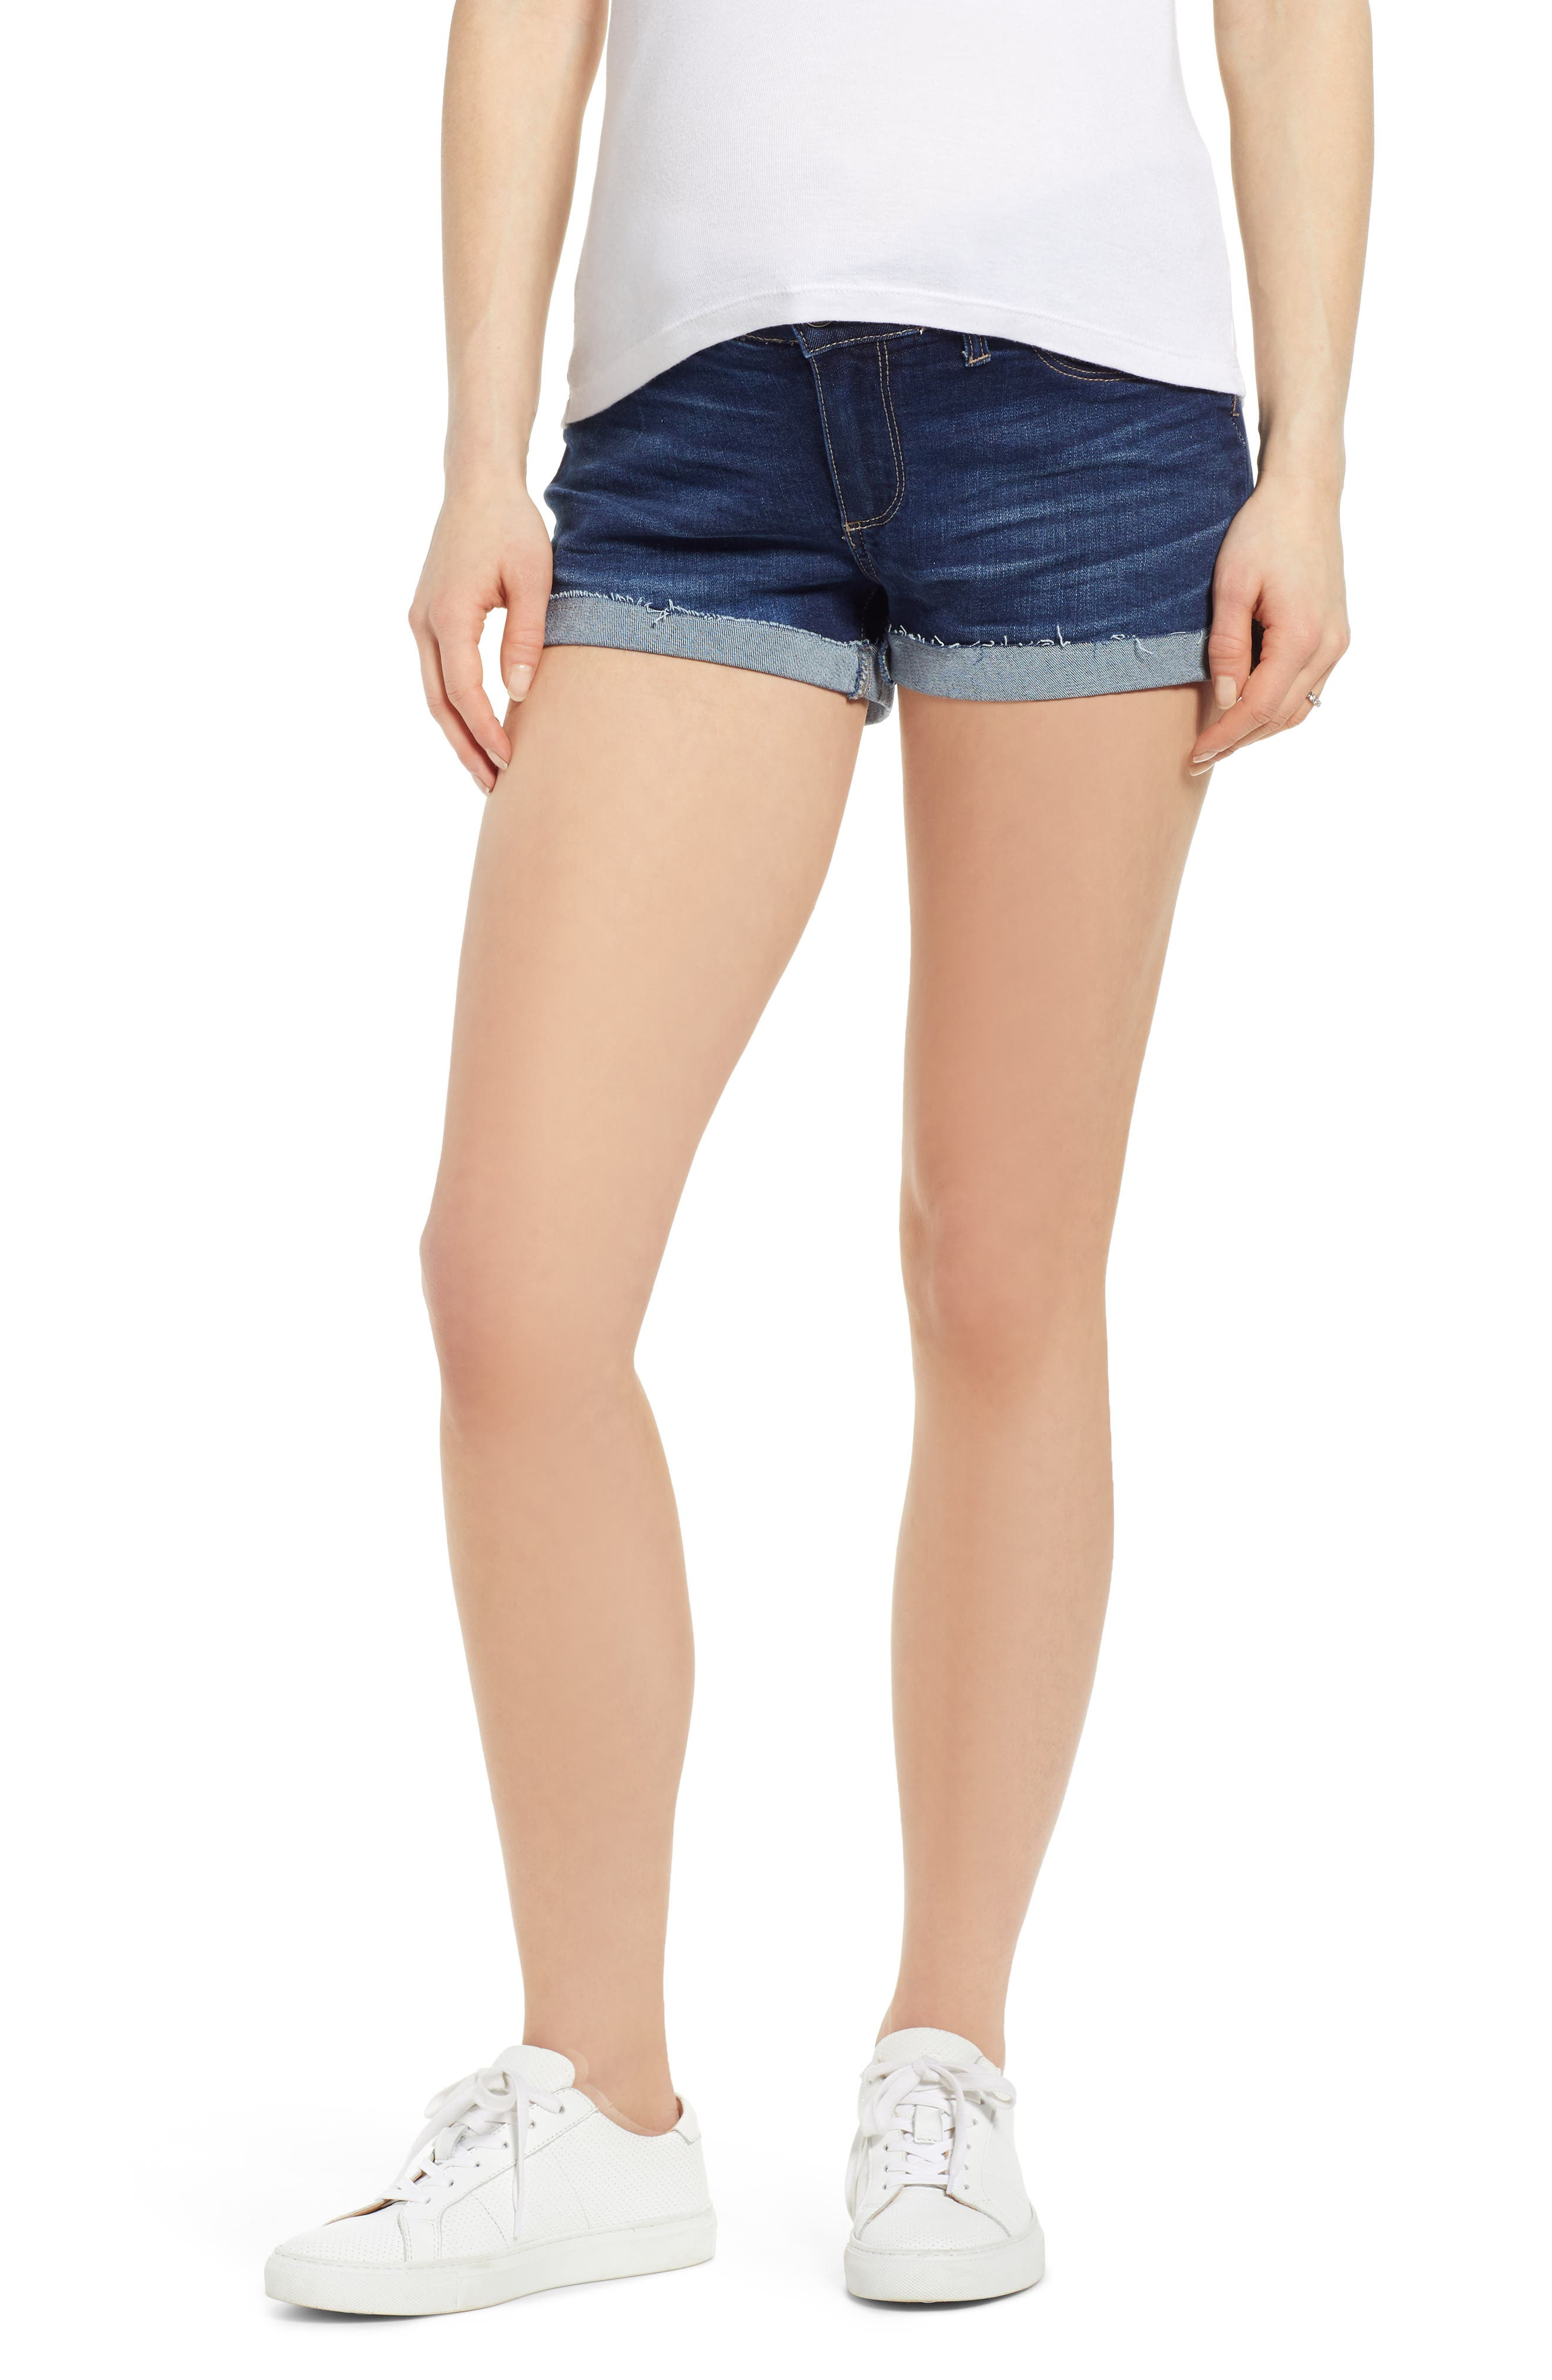 Women's Paige Transcend Vintage - Jimmy Jimmy Denim Maternity Shorts